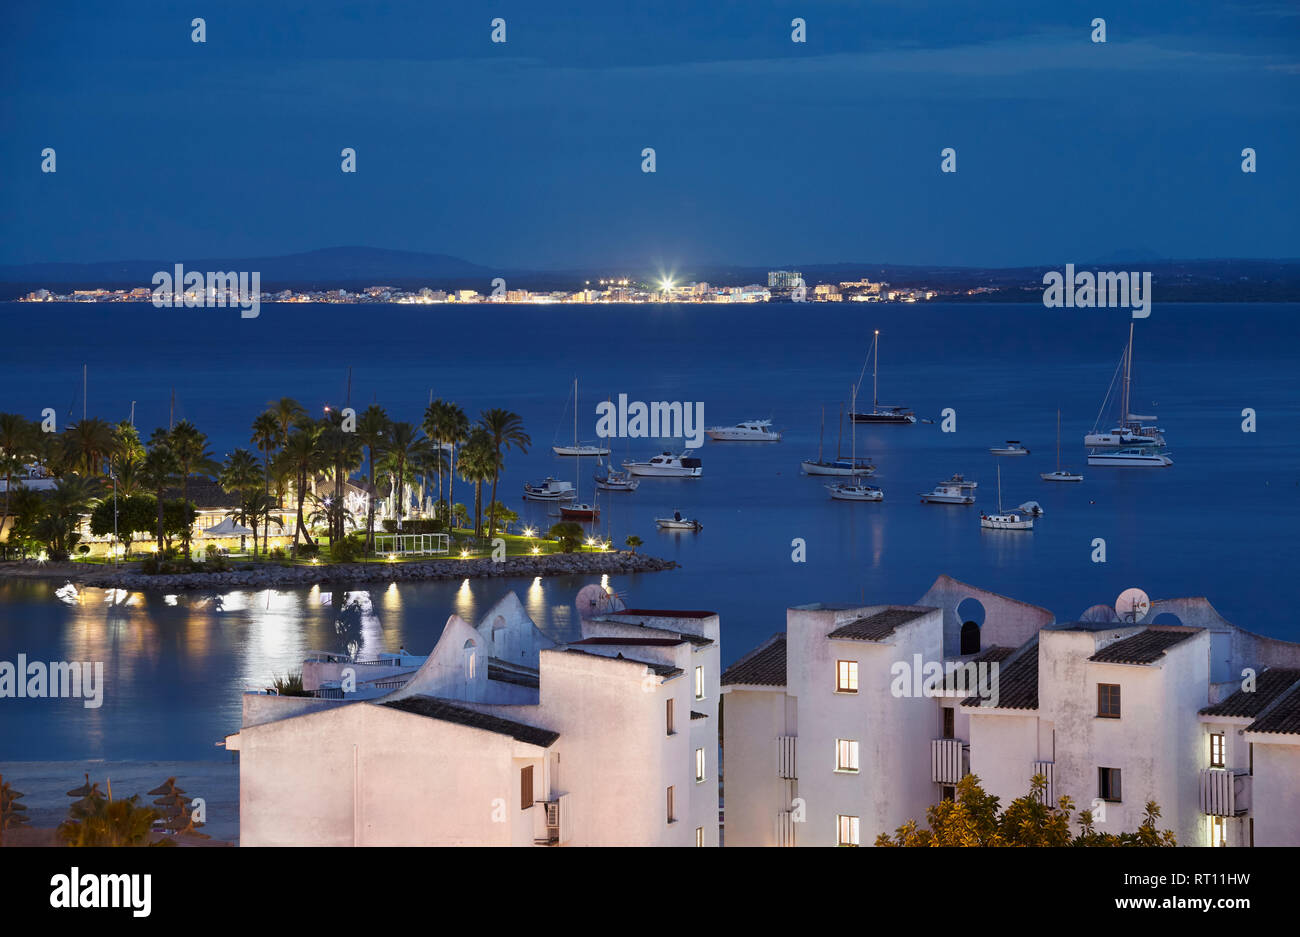 View of Port de Alcudia during the blue hour, Mallorca, Spain. - Stock Image